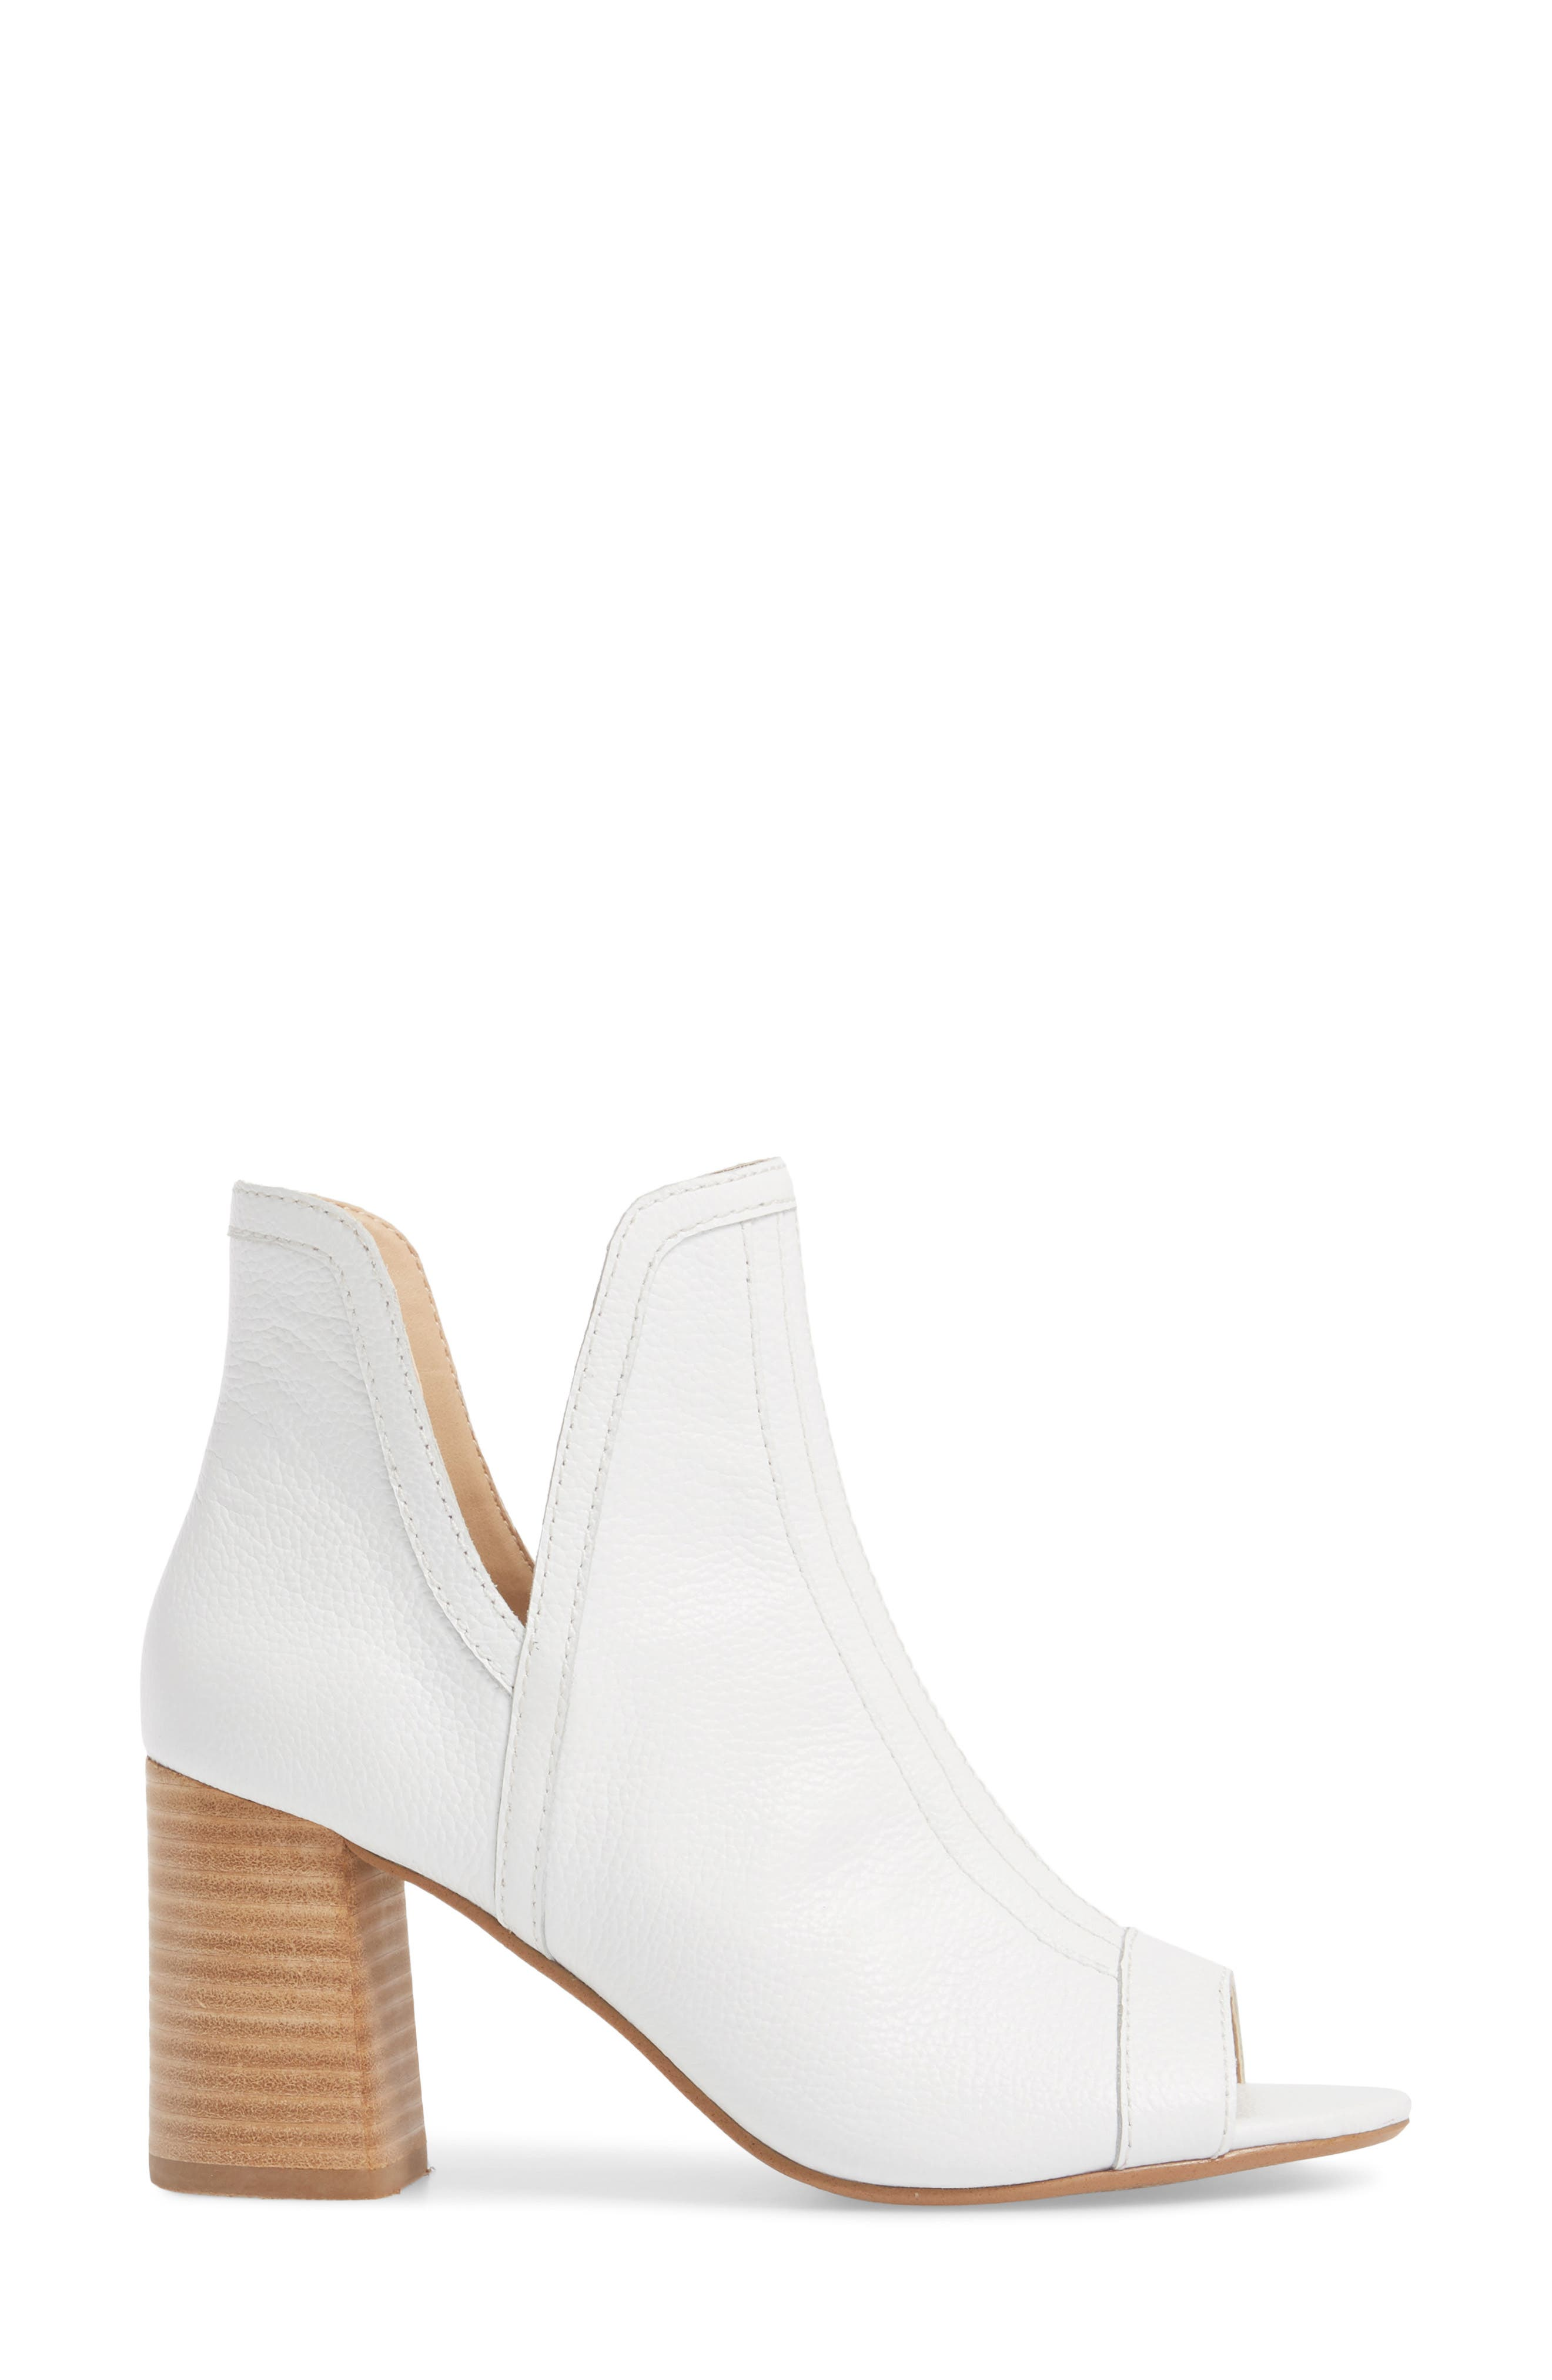 Marla Bootie,                             Alternate thumbnail 3, color,                             WHITE LEATHER